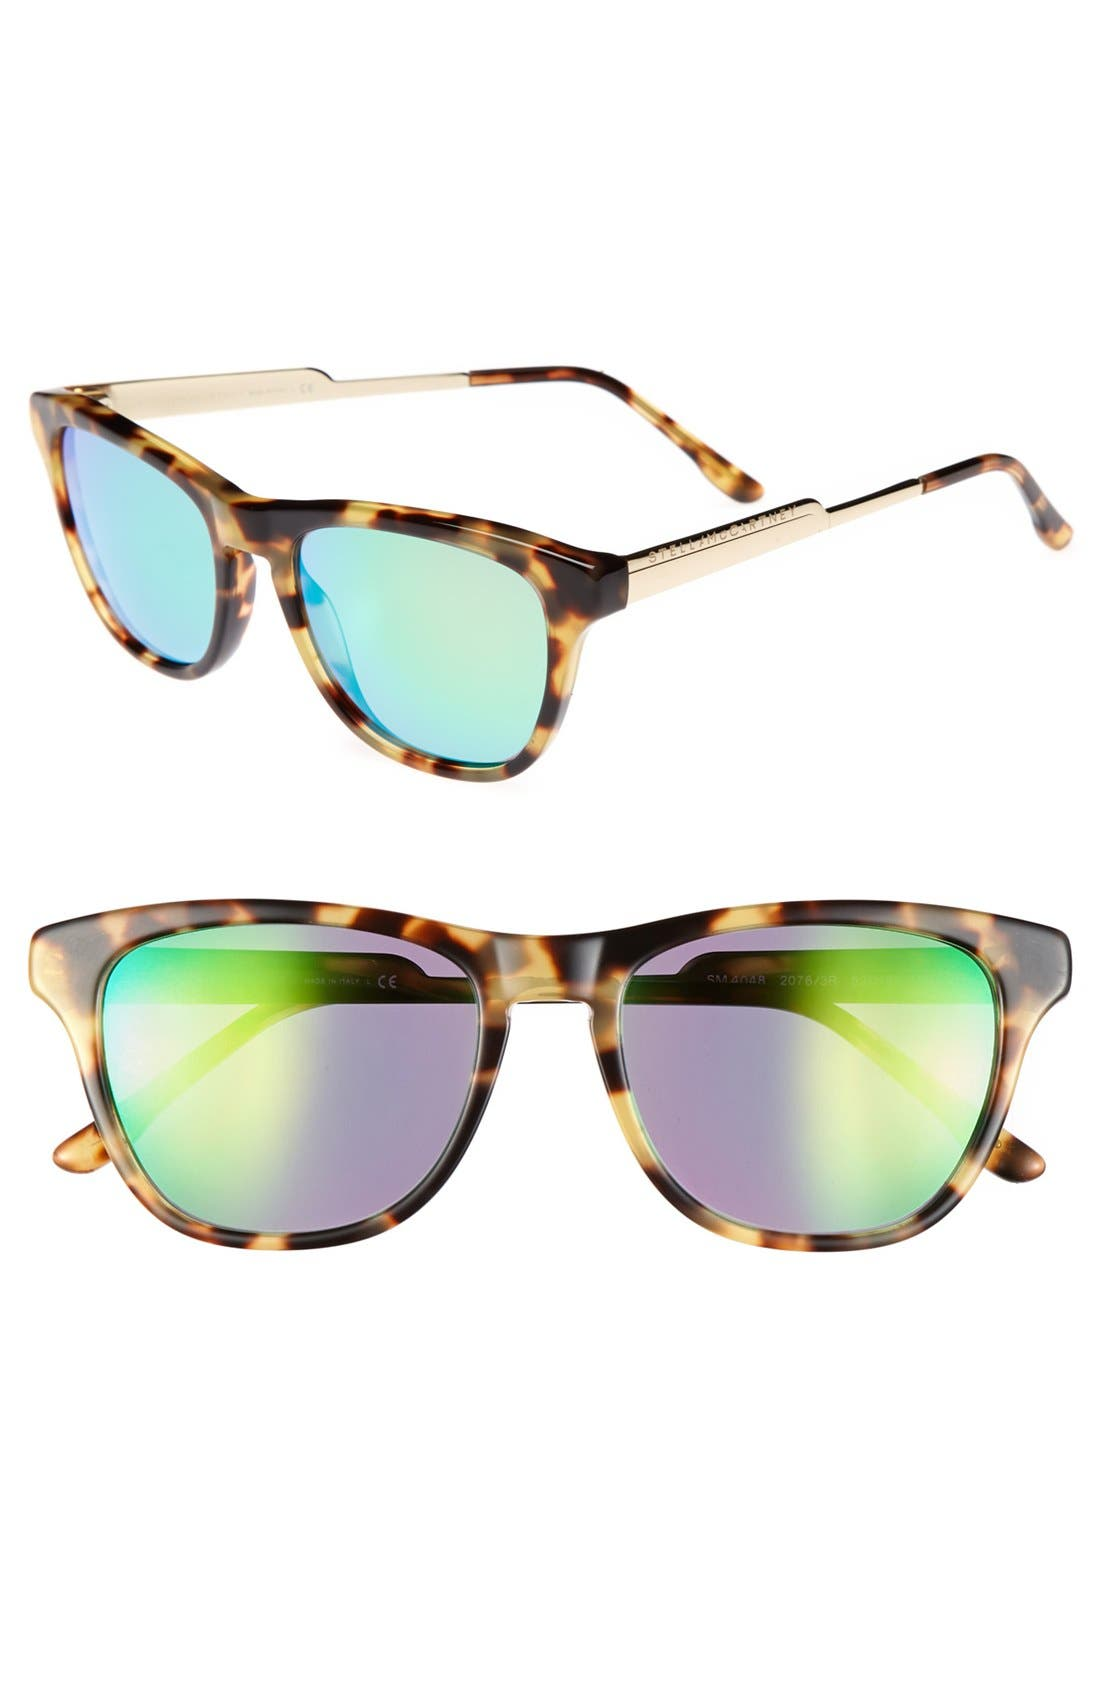 Main Image - Stella McCartney 52mm Retro Sunglasses